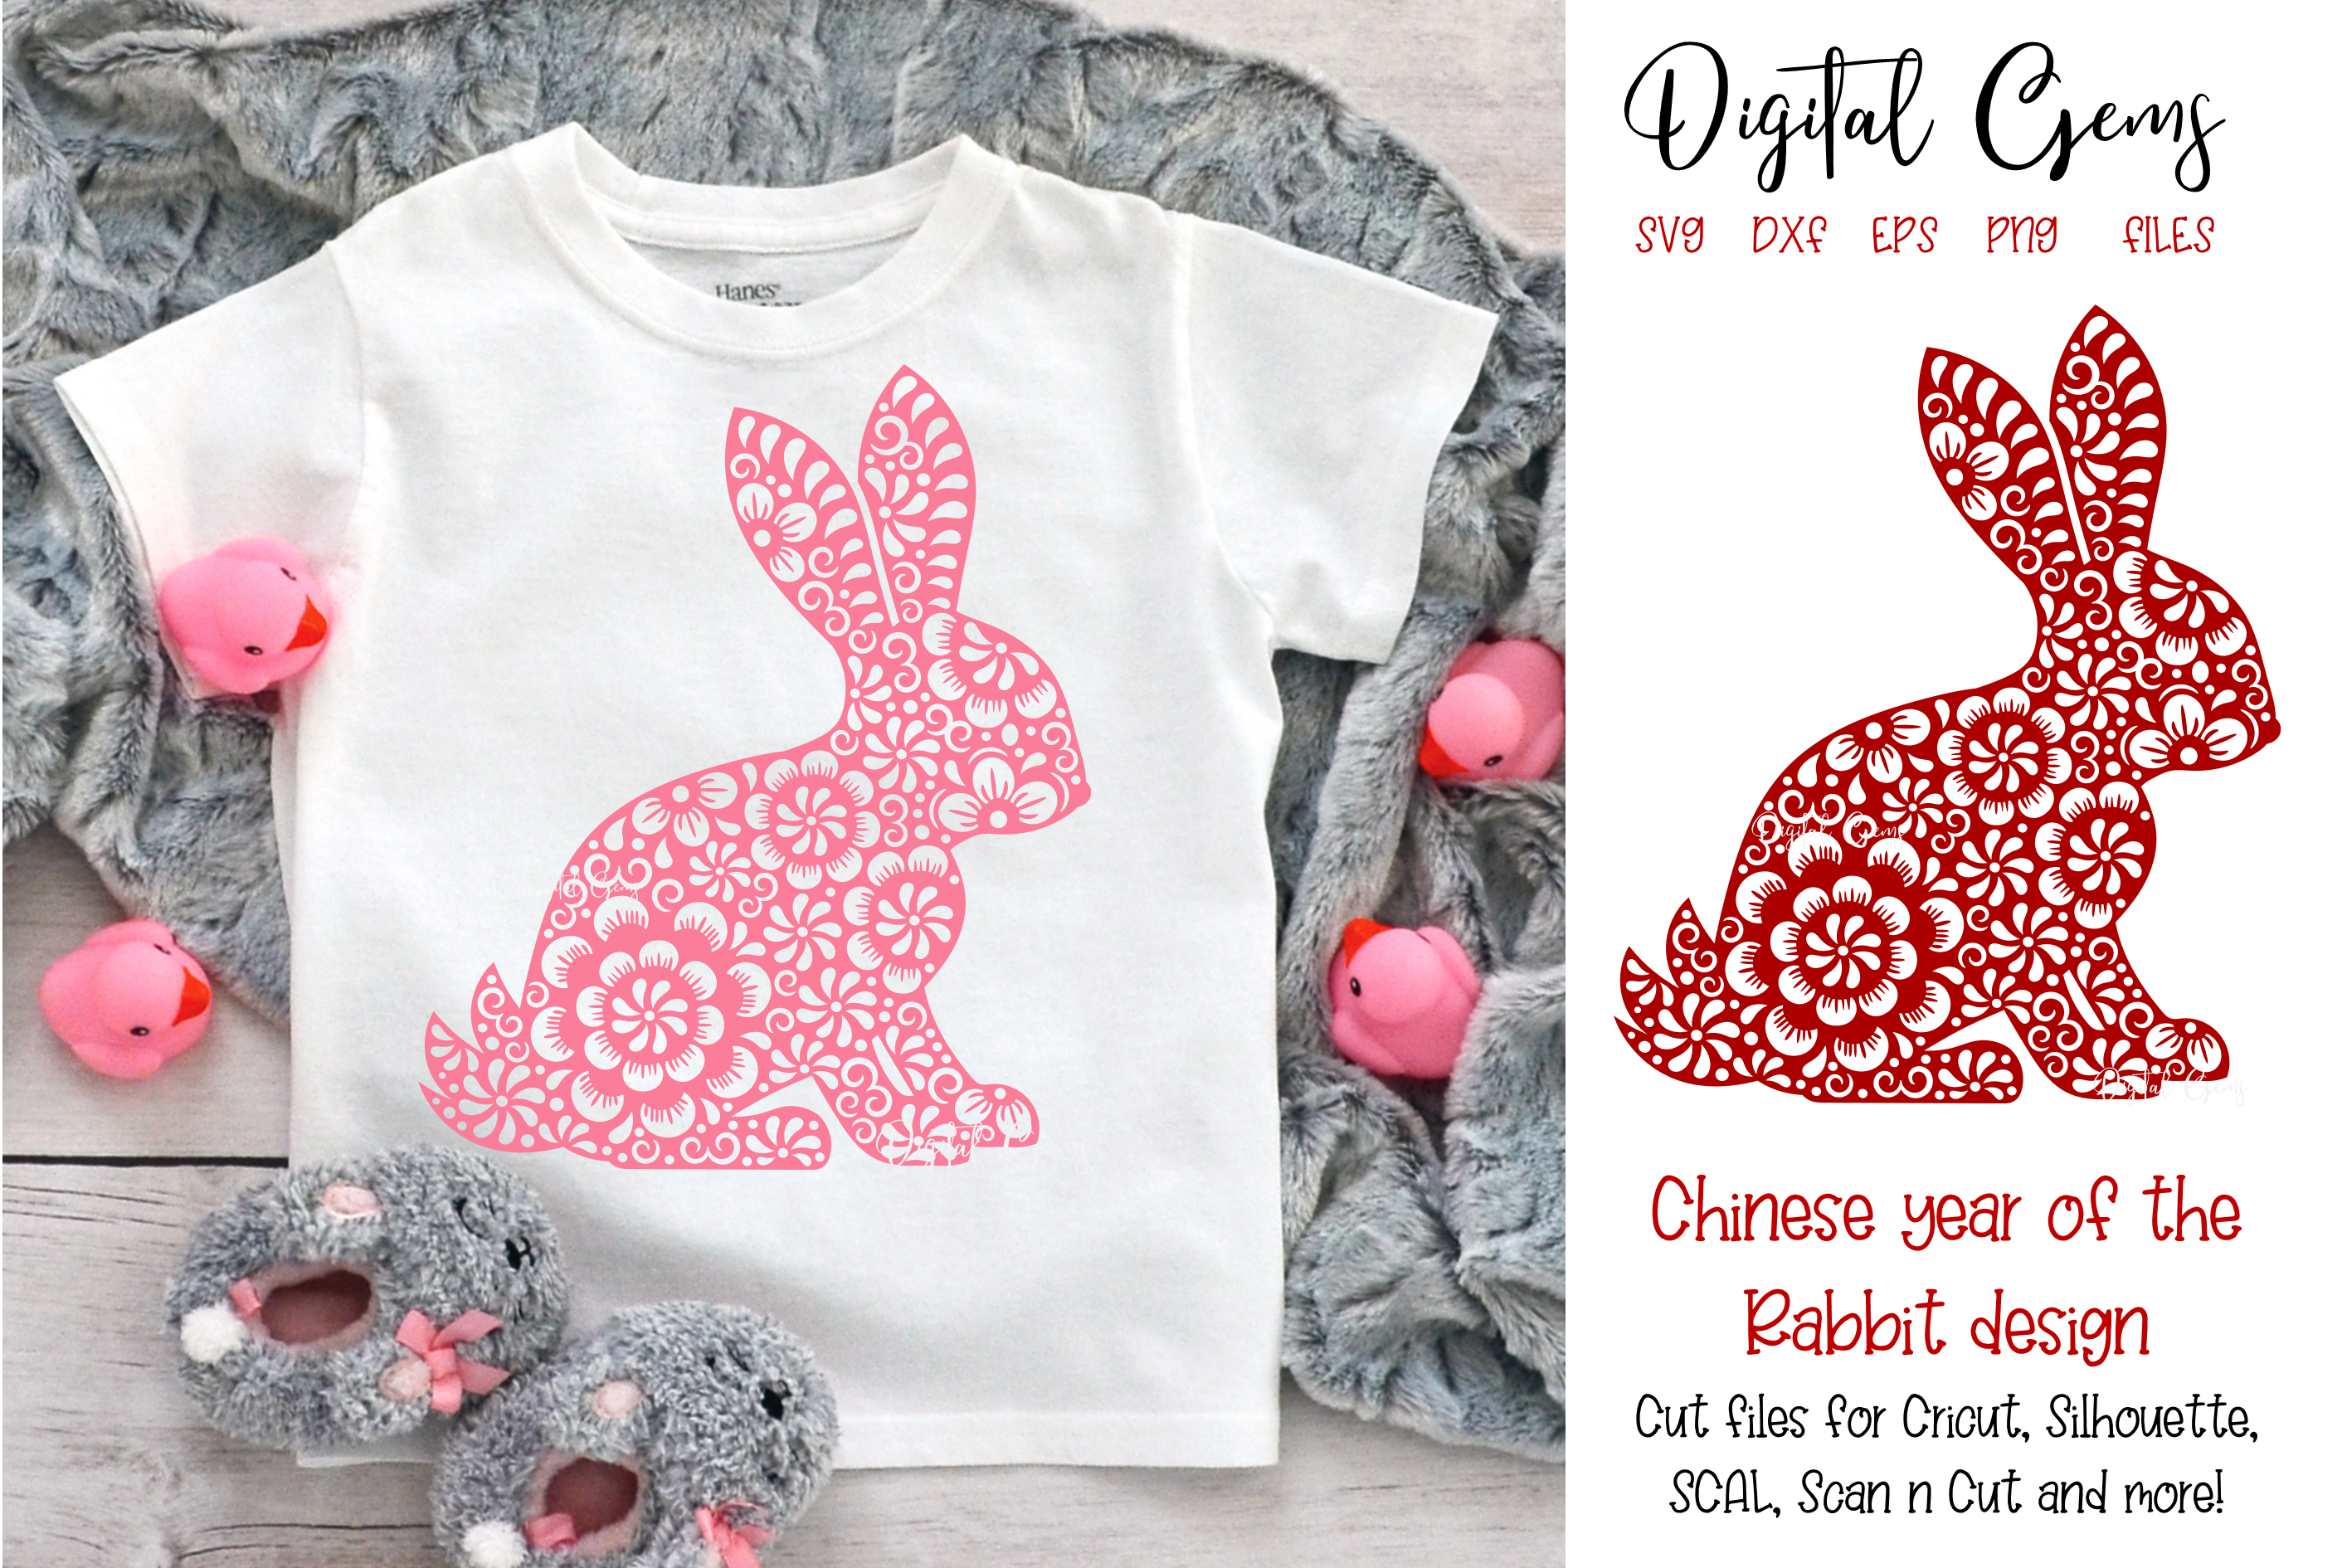 Download Free Chinese Year Of The Rabbit Design Graphic By Digital Gems for Cricut Explore, Silhouette and other cutting machines.